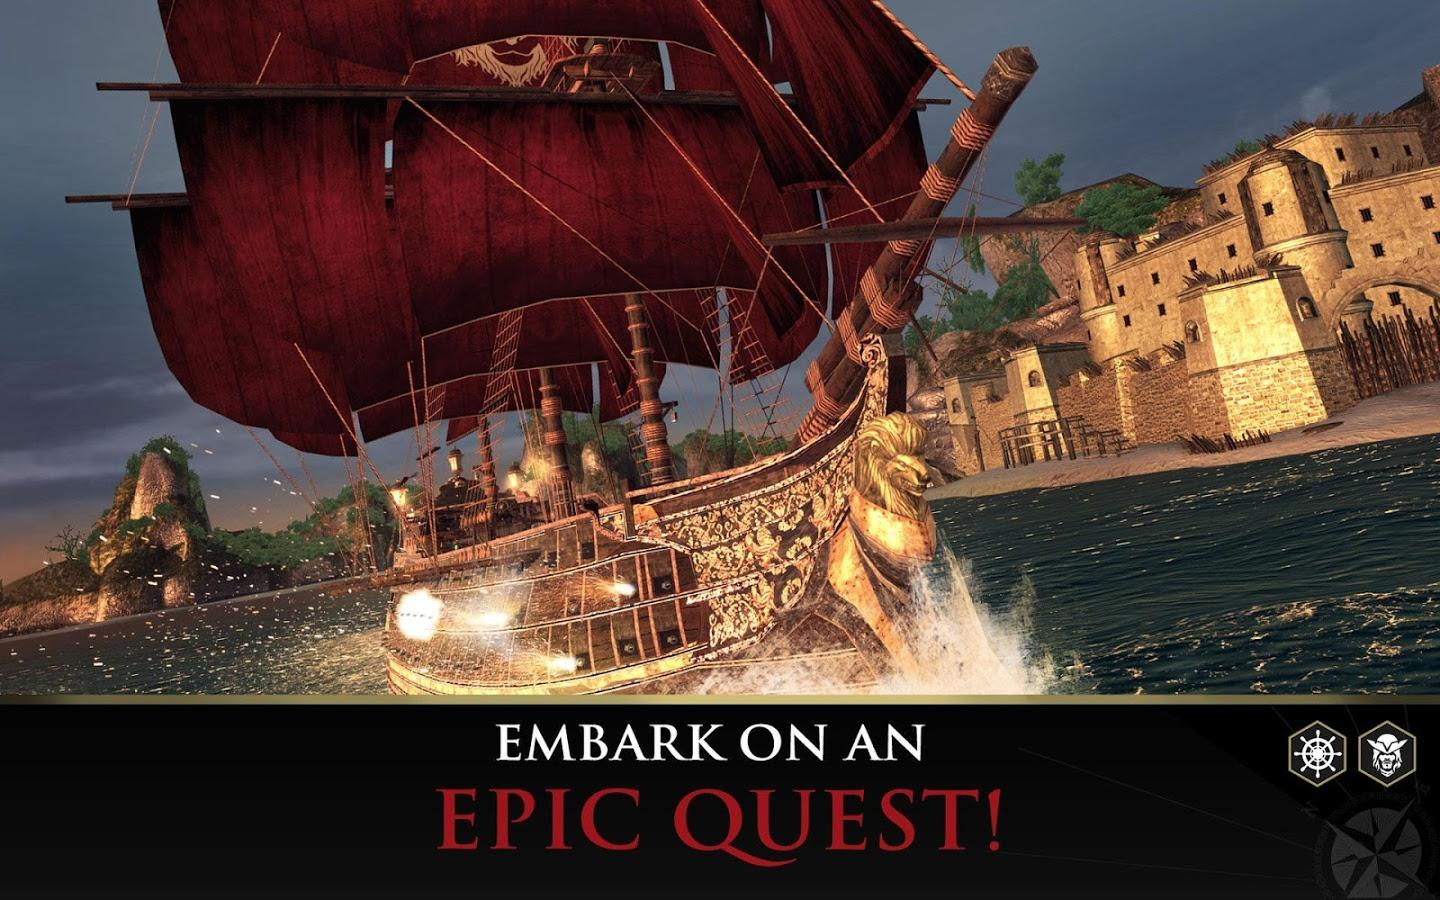 Assassin's Creed Pirates (MOD APK, Unlimited Money) v2.9.1 2